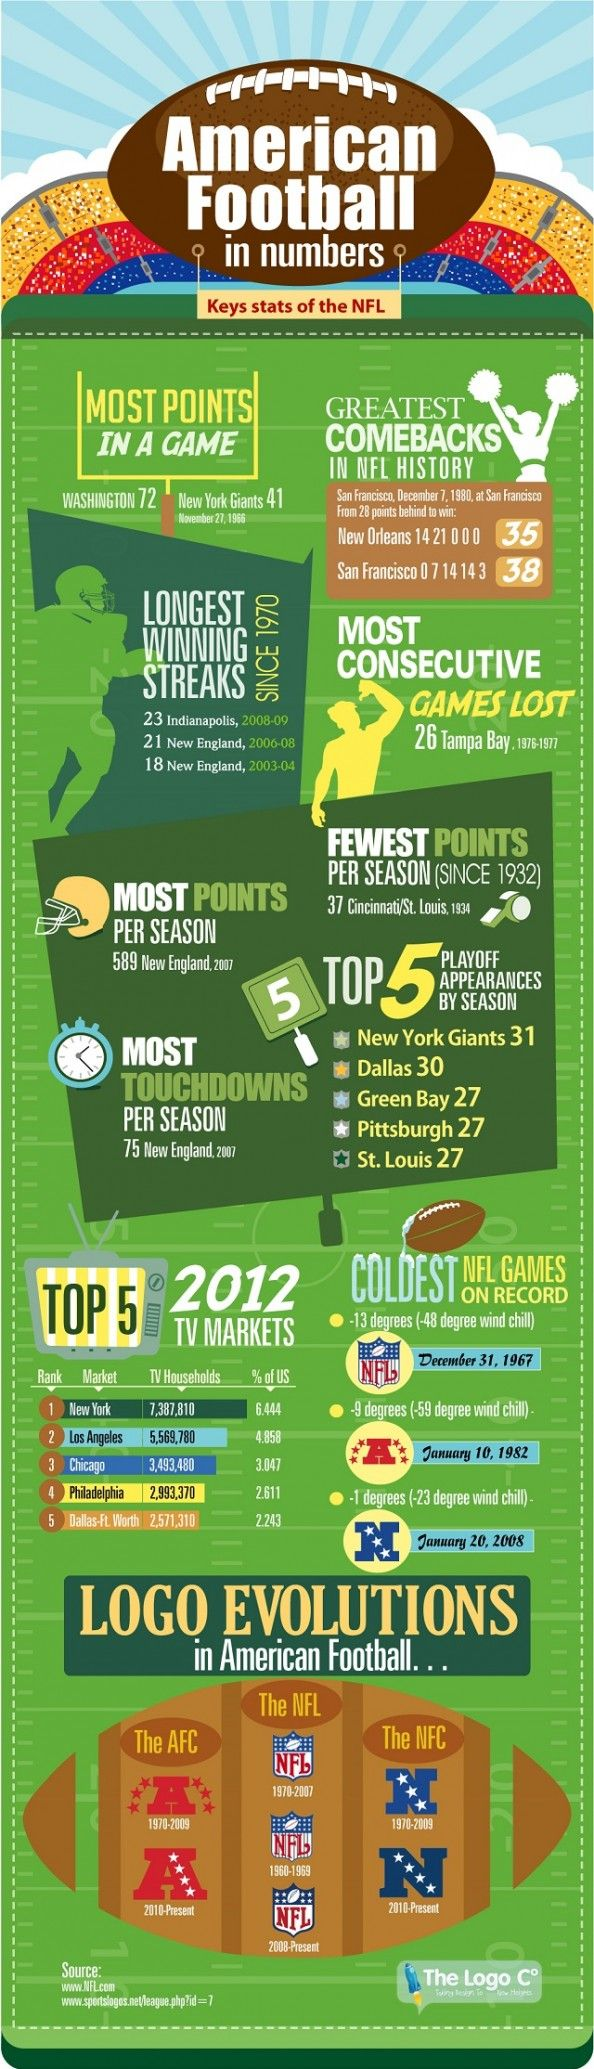 American Football in numbers #nfl #stats